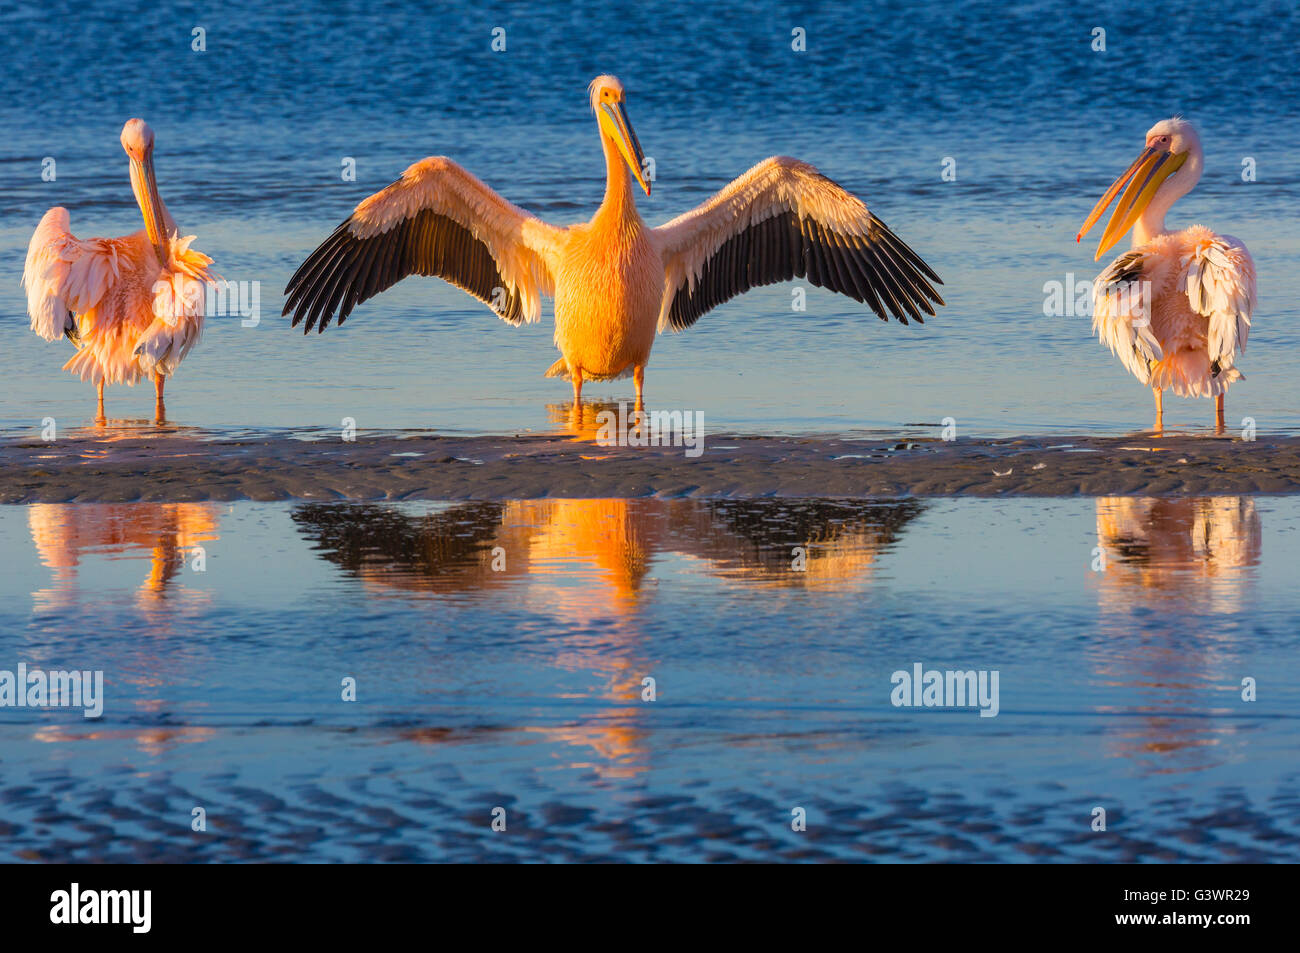 Great white pelicans in Walvis Bay, Namibia. - Stock Image